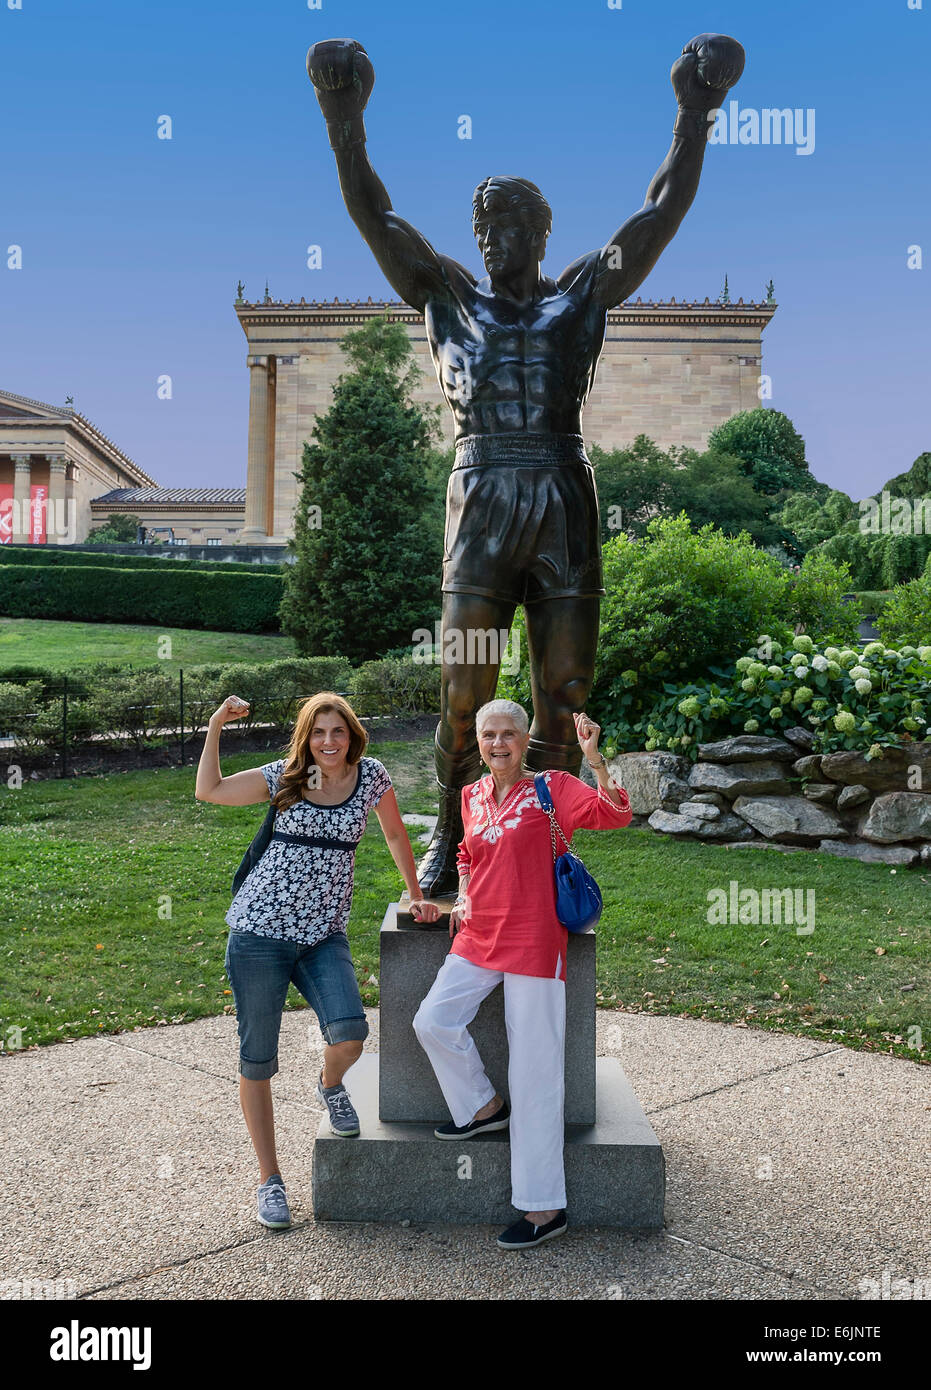 Tourists pose with the Rocky statue in from of the Philadelphia Museum of Art. - Stock Image